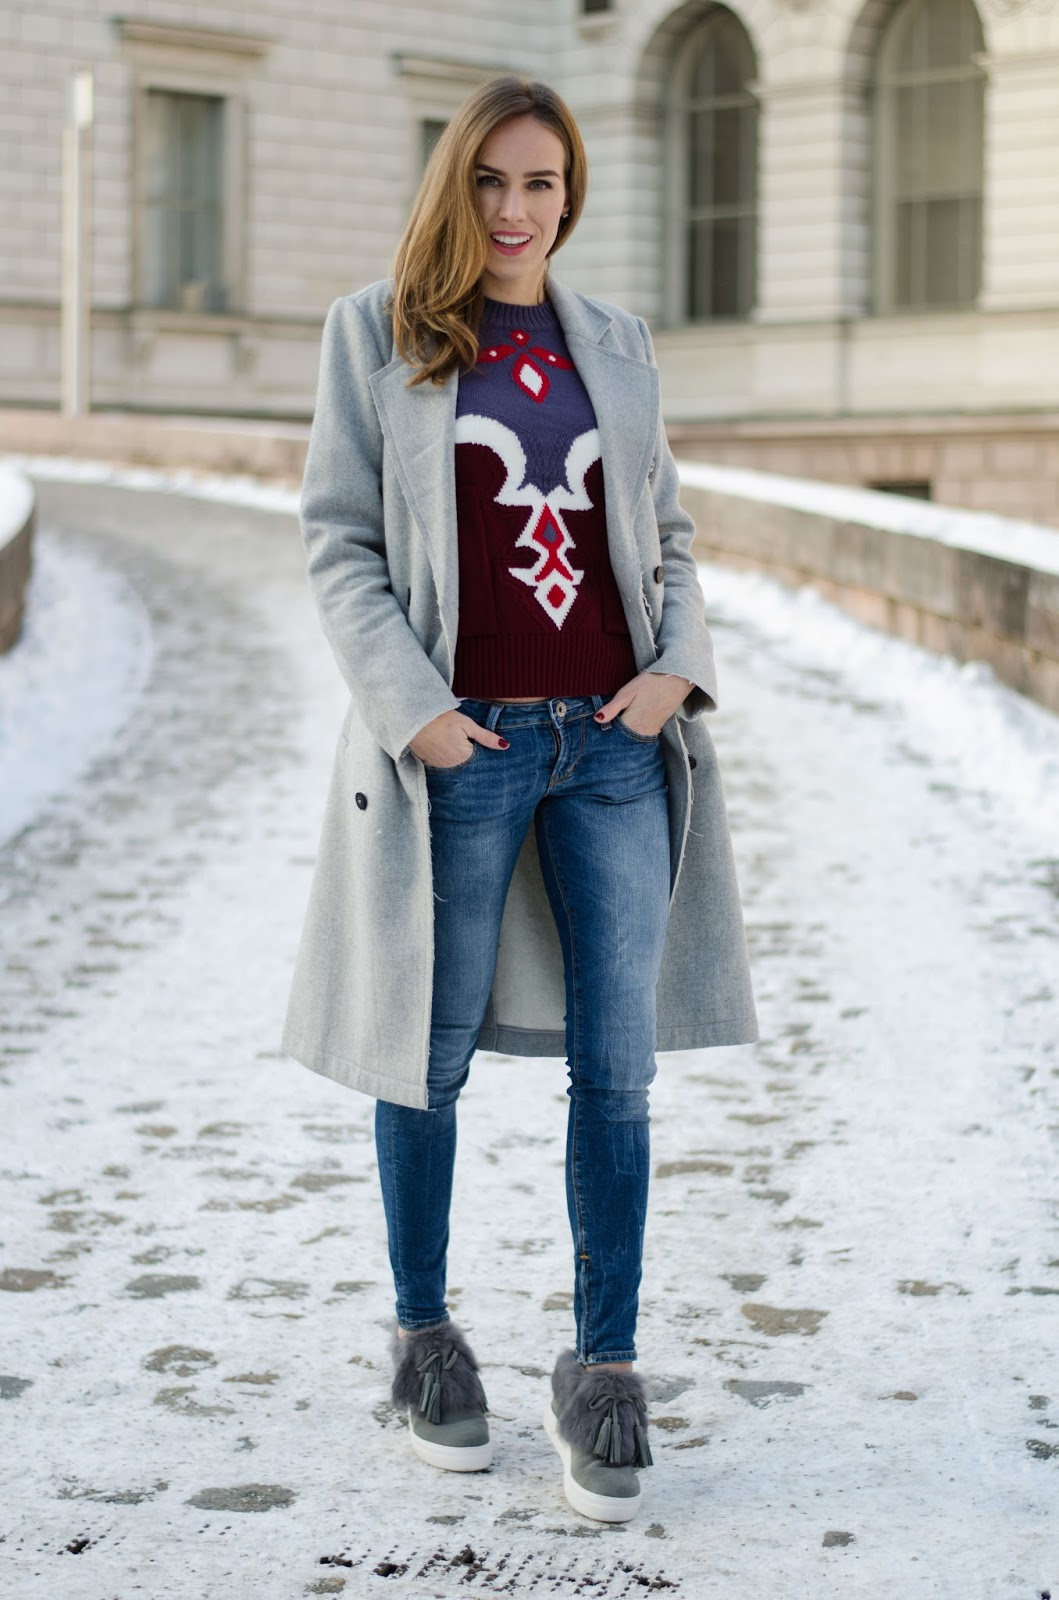 kristjaana mere gray vila coat guess jeans zaful sweater fur sneakers winter look